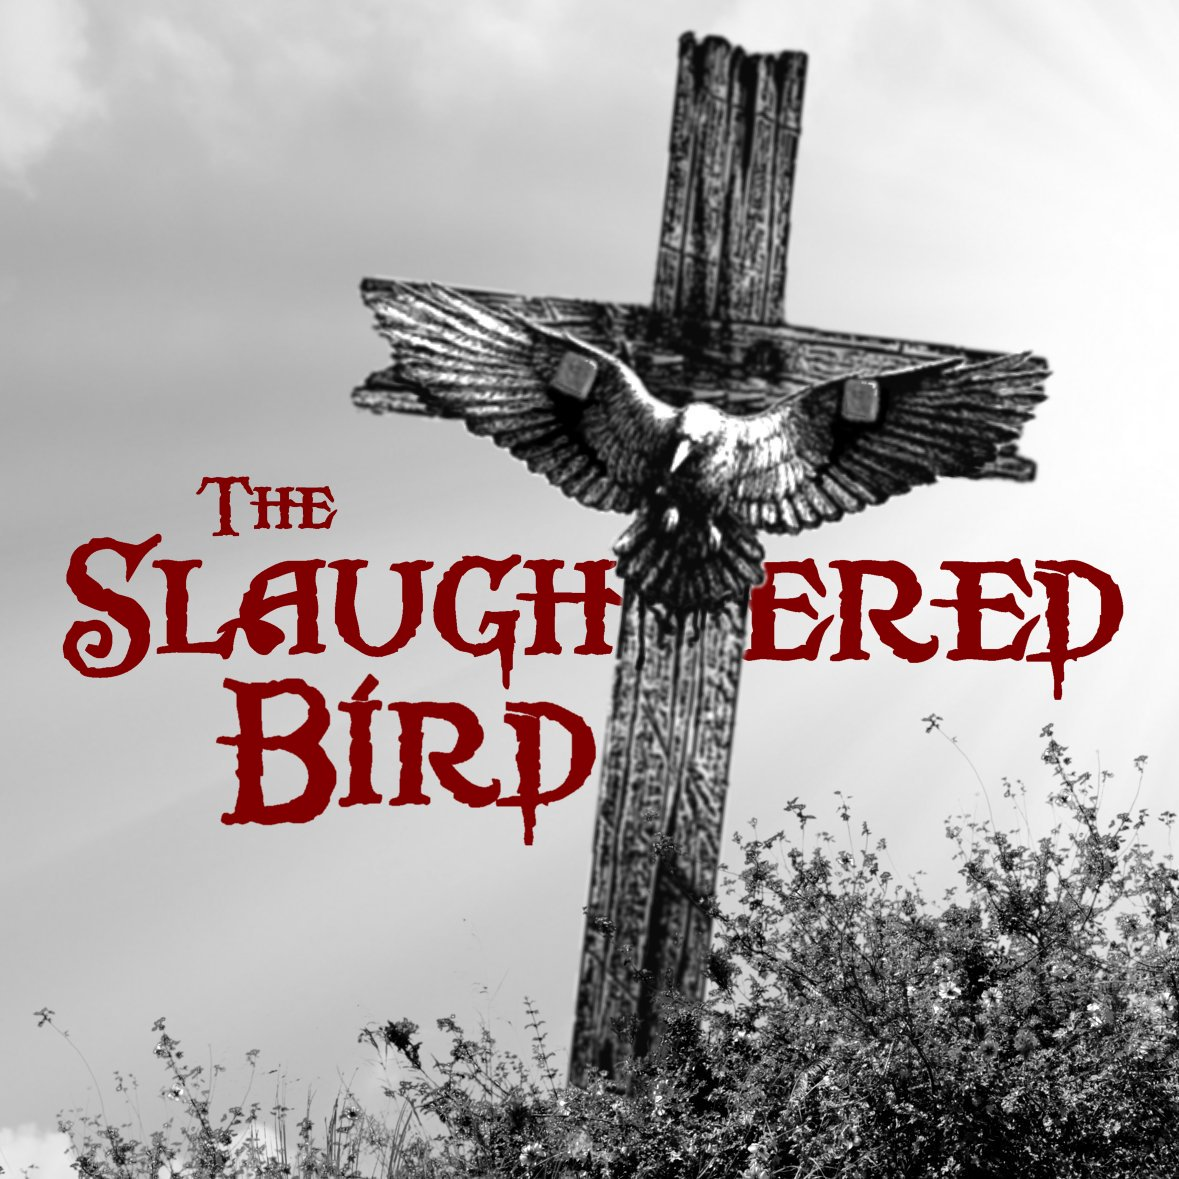 The Slaughtered Bird